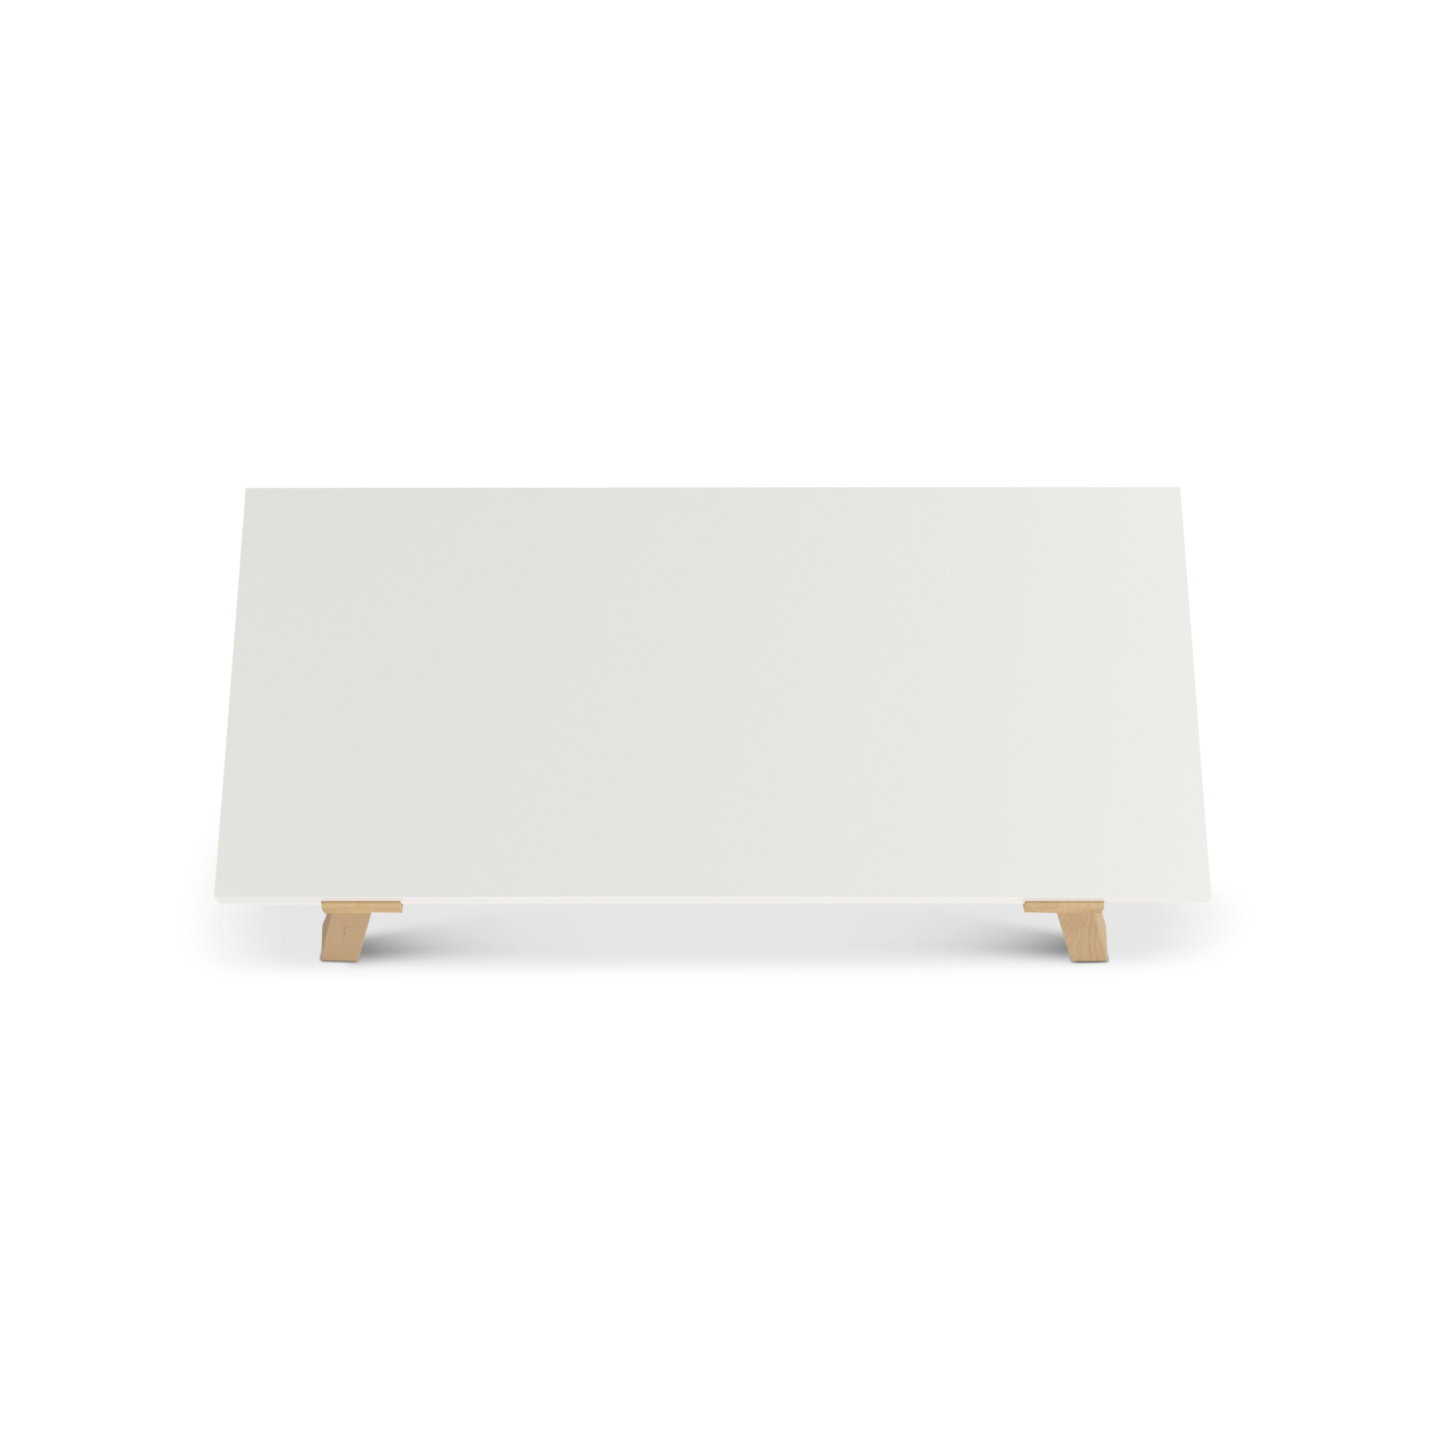 Solid white maple top office desk